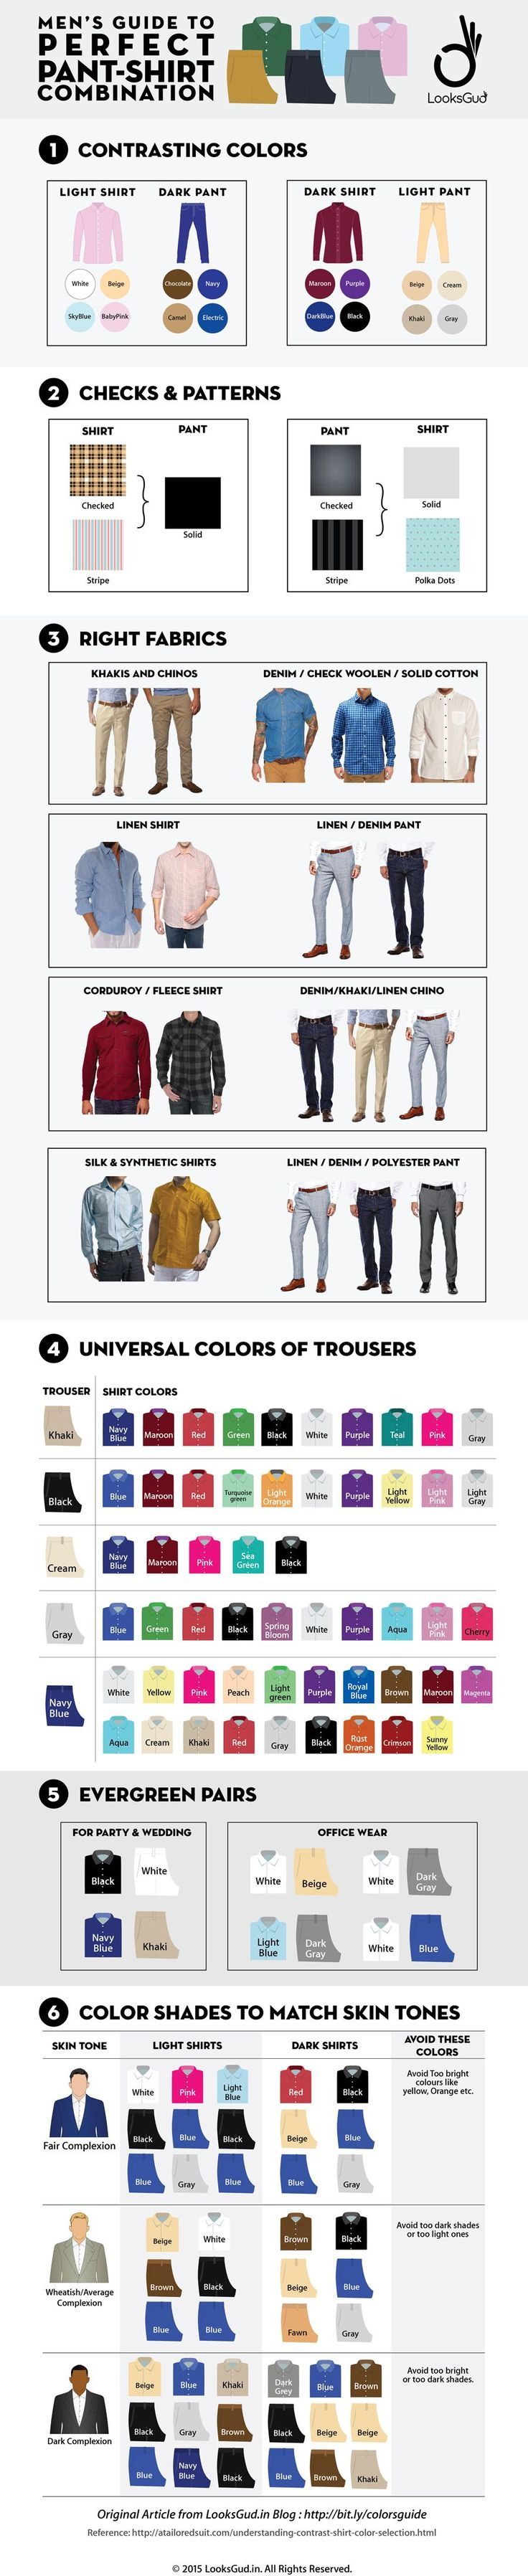 Perfect Pant Shirt Matching Guide for Men's Formal and Casual Look. - www.LooksGud.in